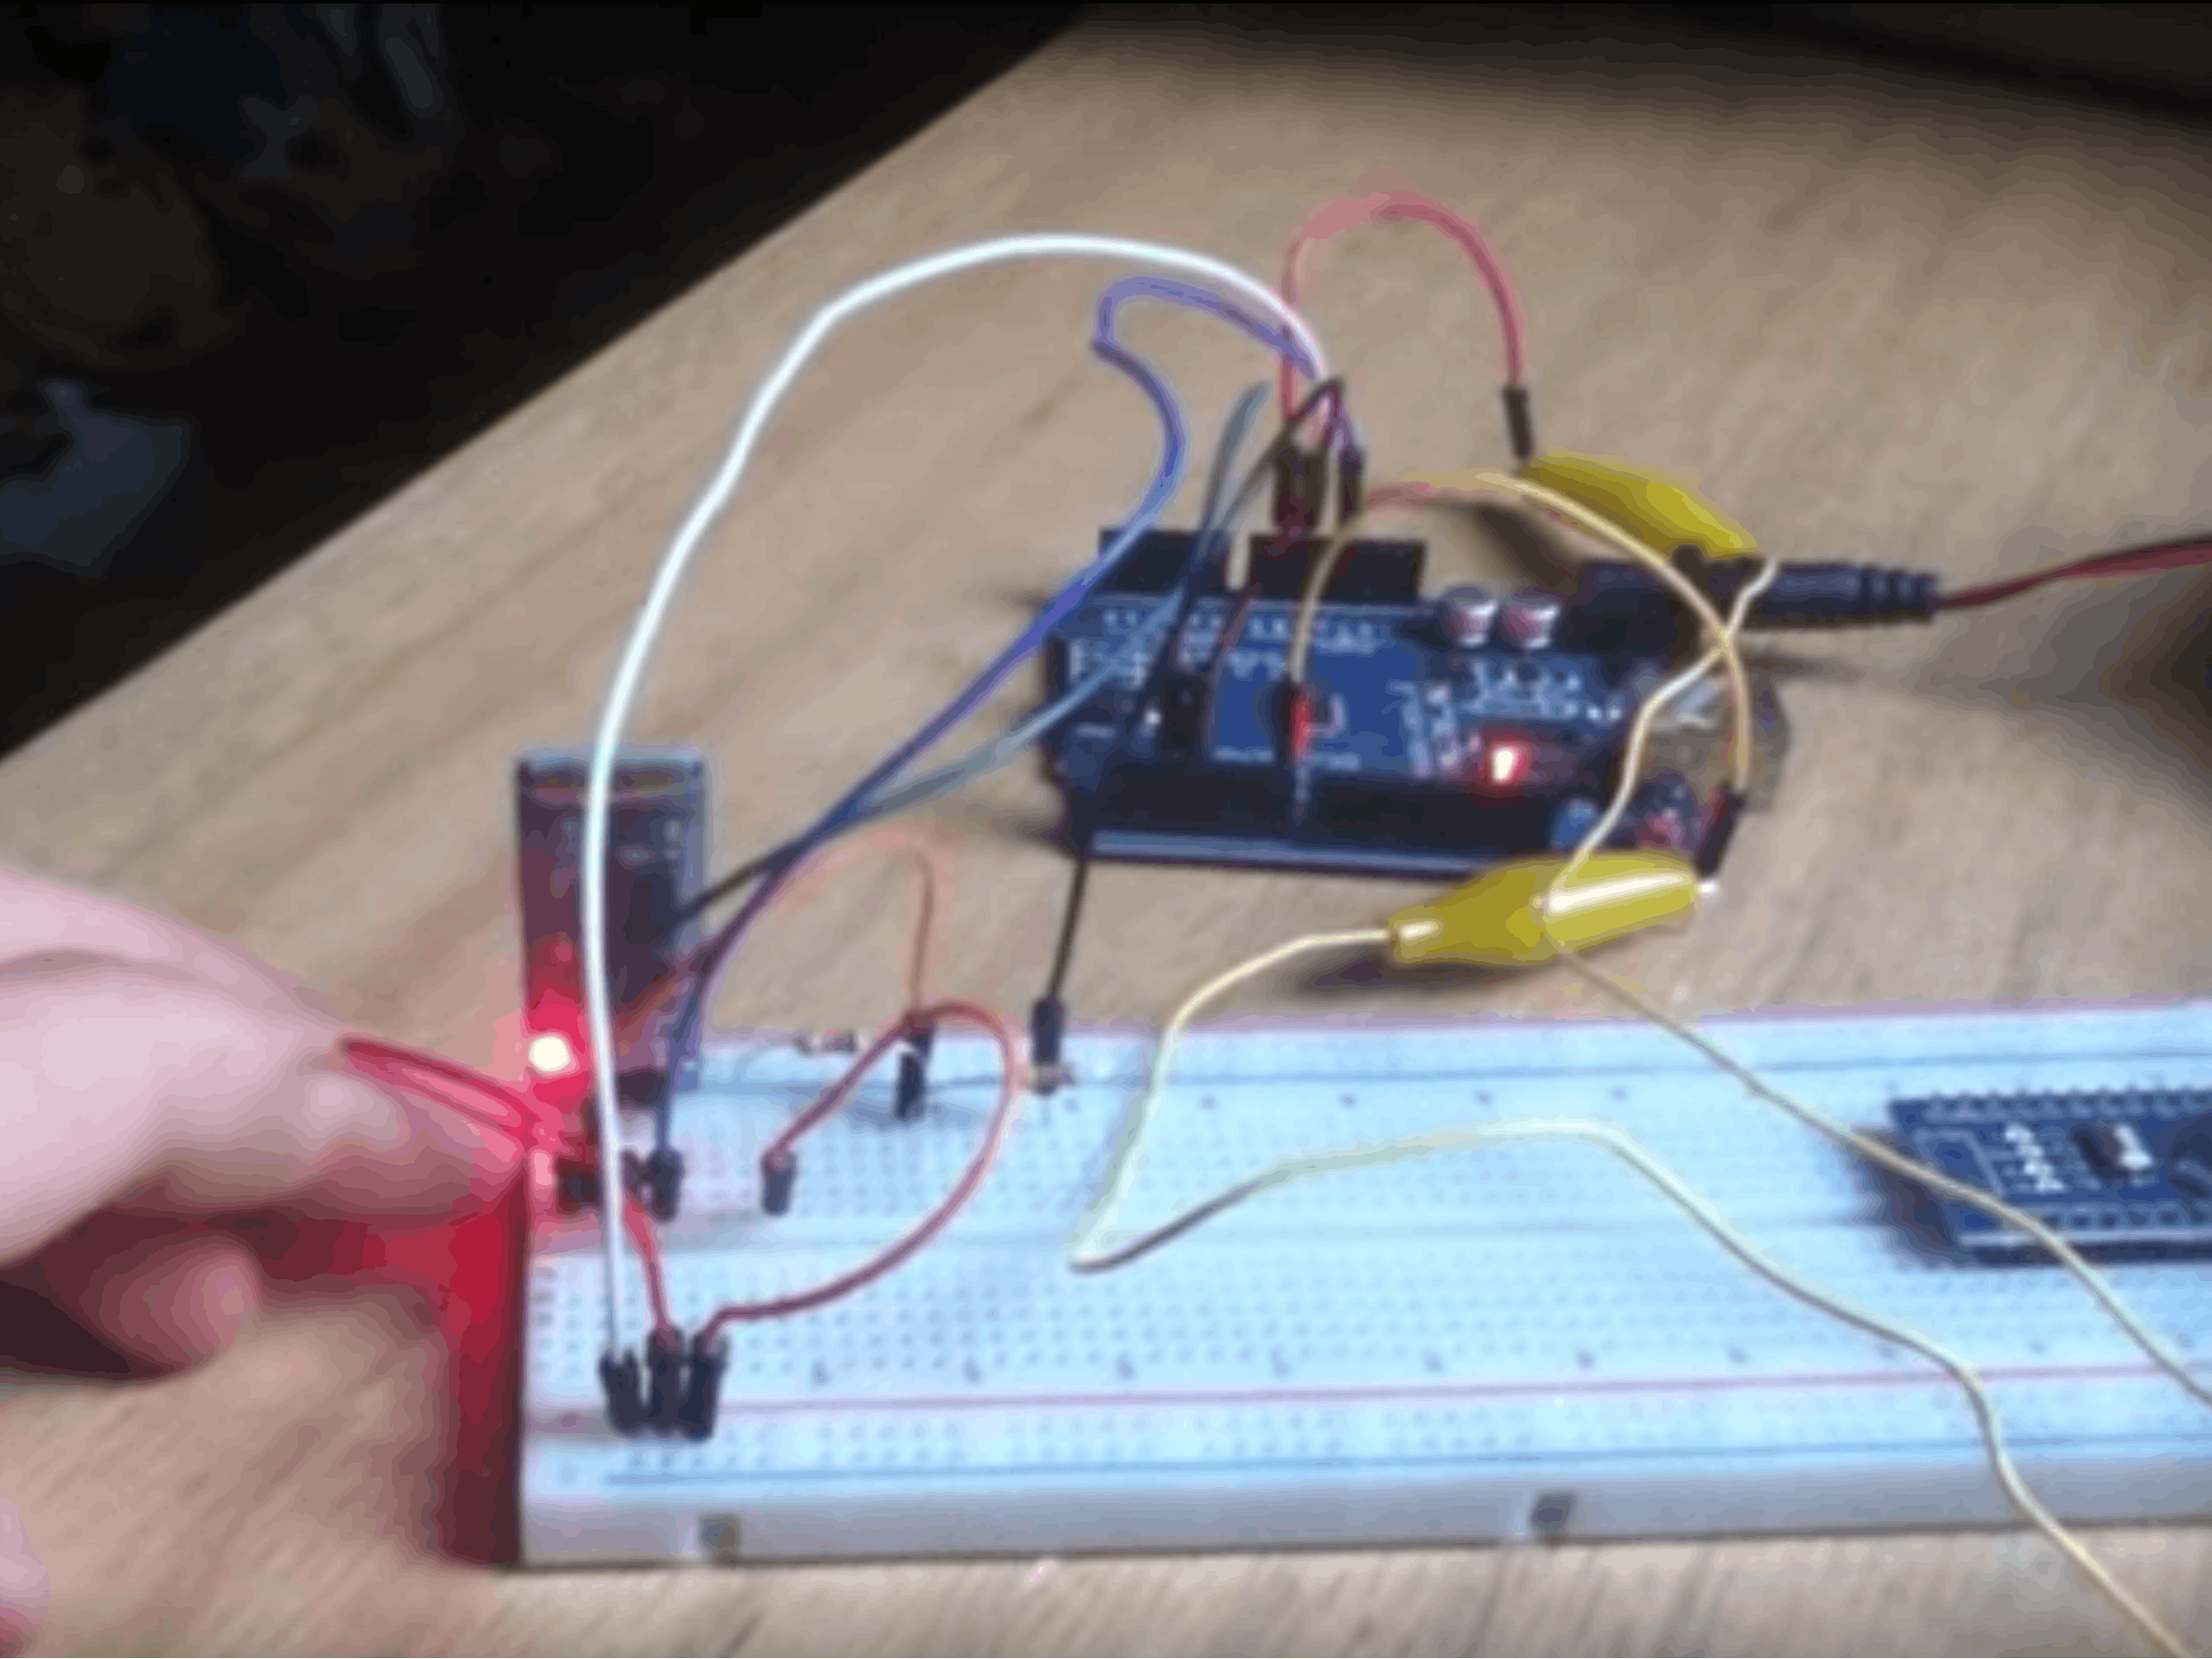 Remote Bluetooth Light Control with Python